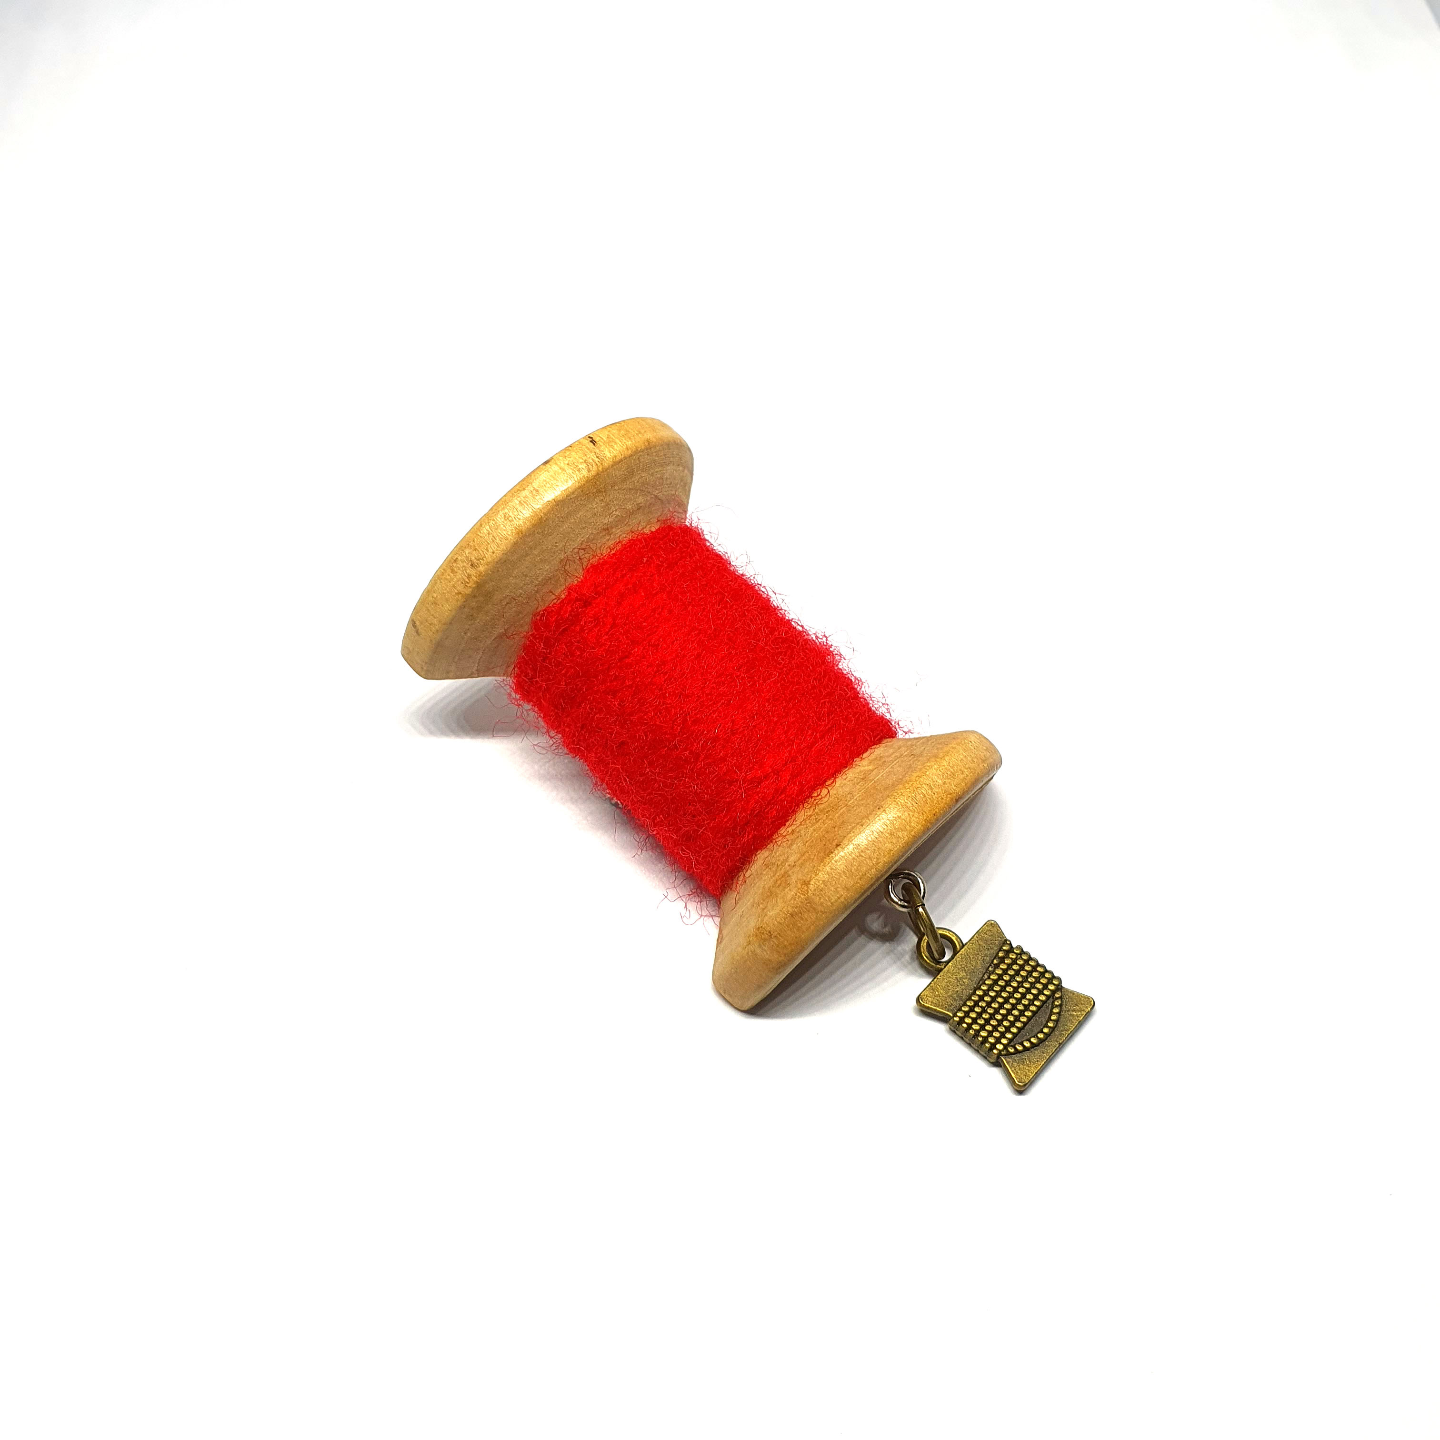 Handmade Brooch: Large Thread Spool (Plain Red 1) by Doe & Audrey